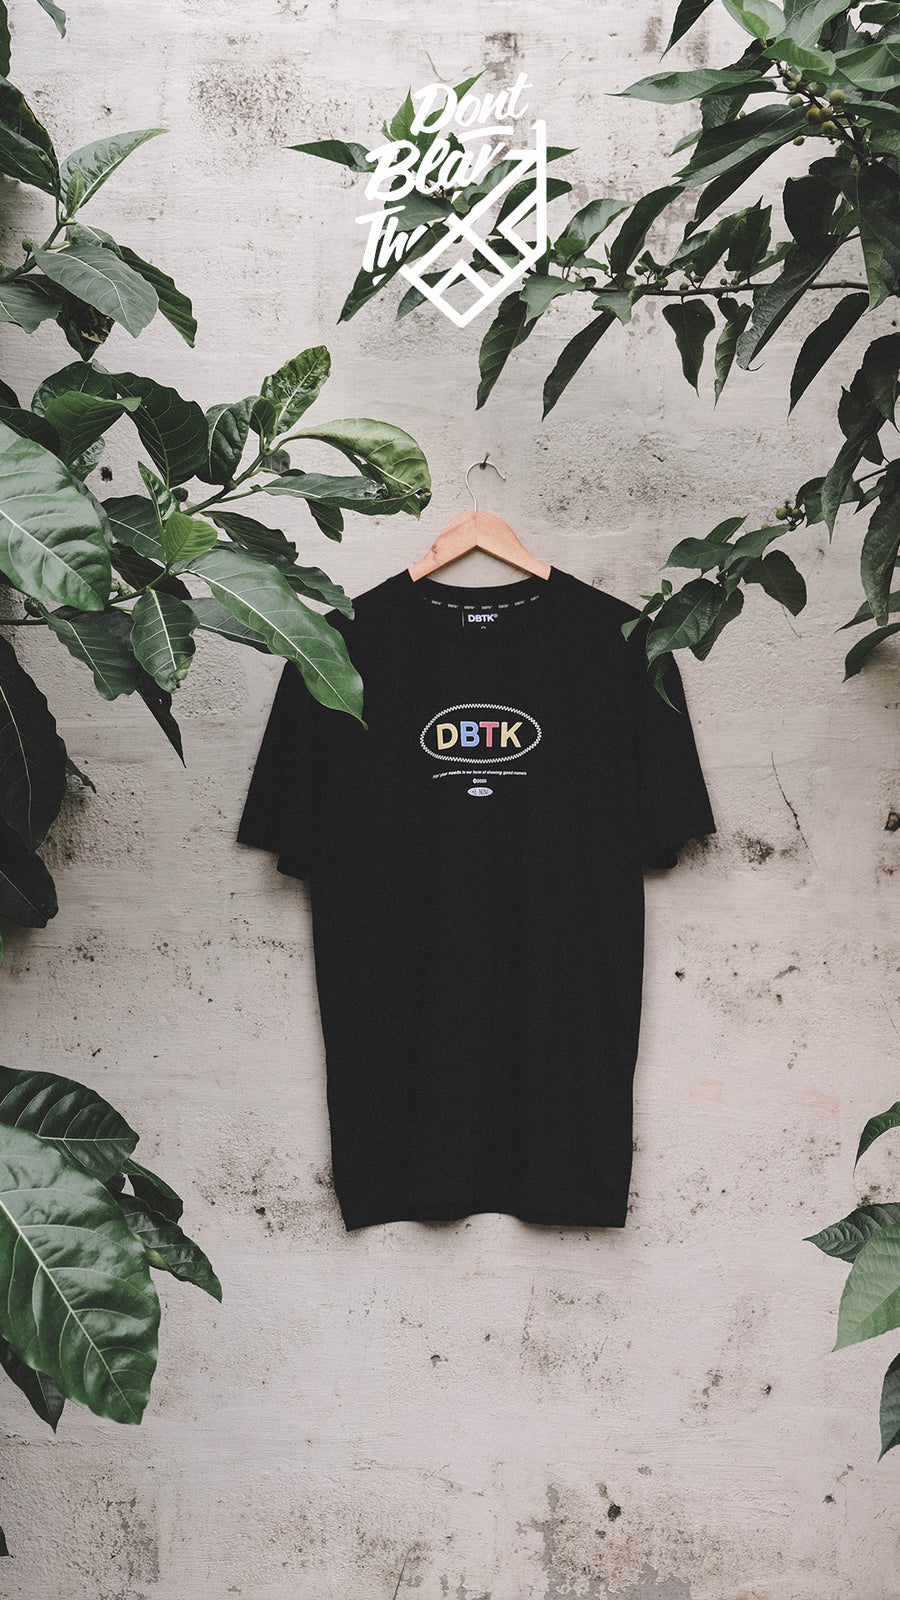 DBTK : Good Manners (Black)